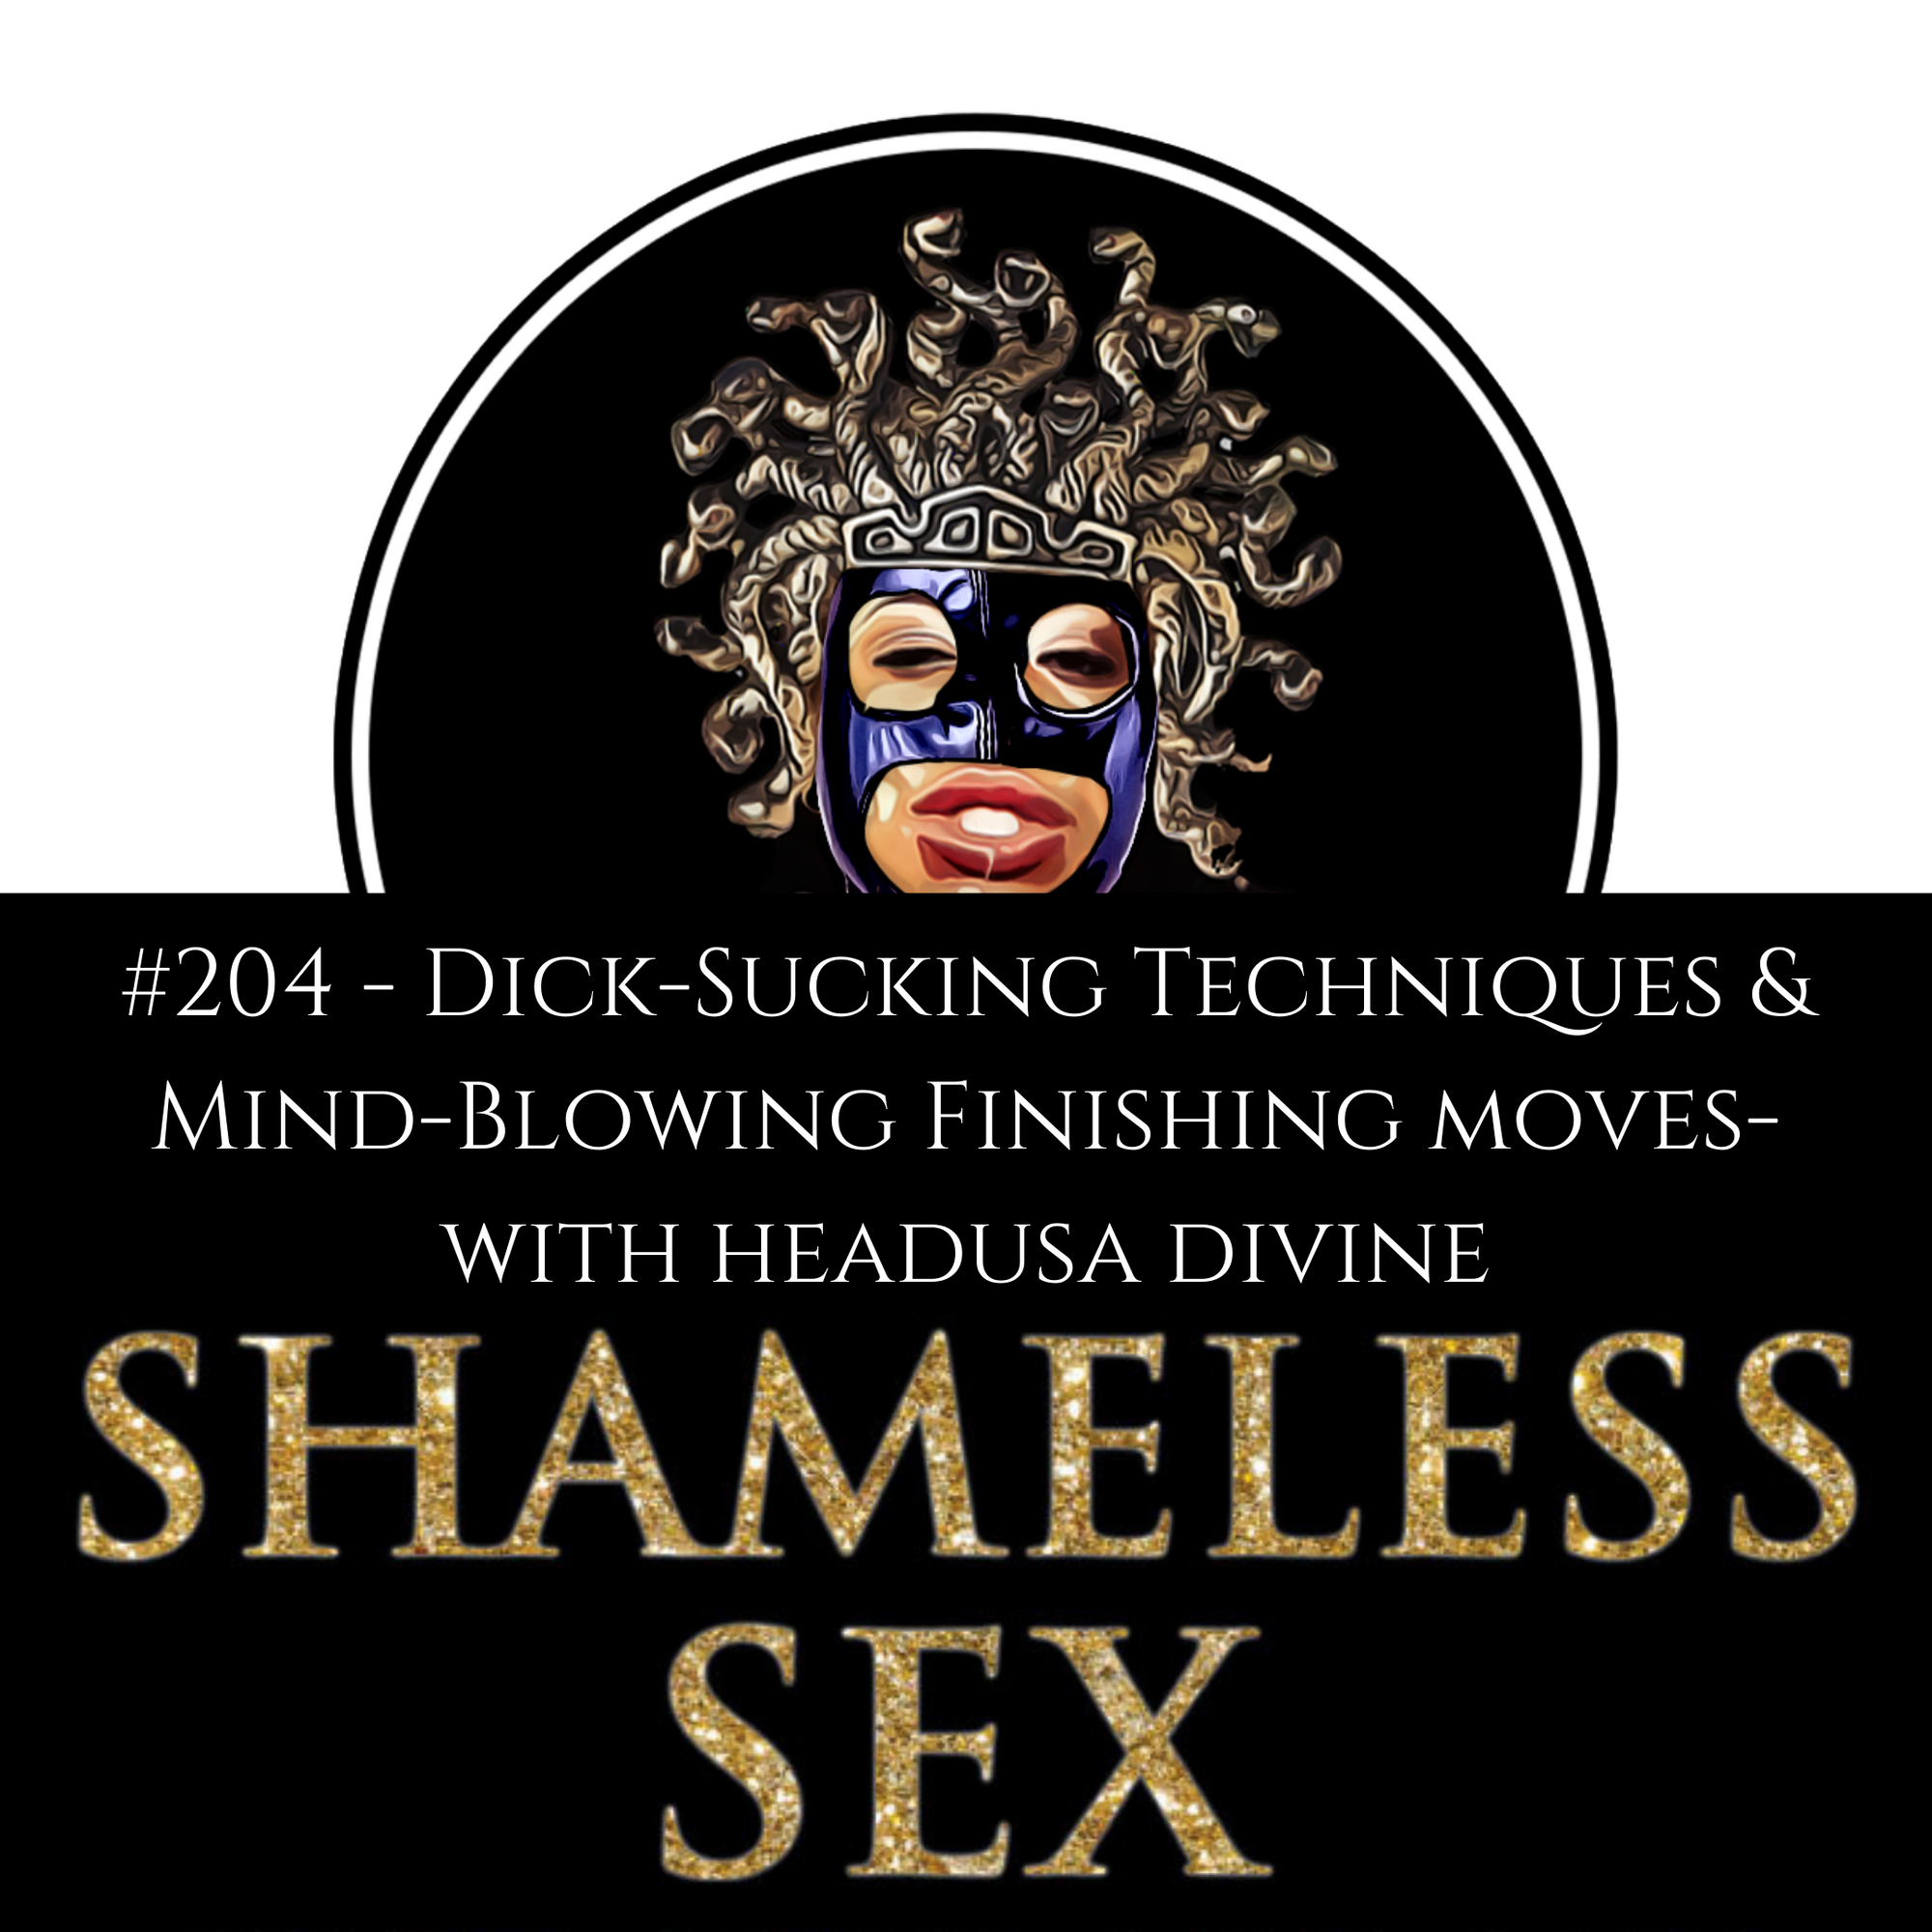 Listen to Shameless Sex Podcast's Latest Episode #204 Dick-Sucking Techniques And Mind-Blowing Finishing Moves - With Master Oralist HeadUsa Divine